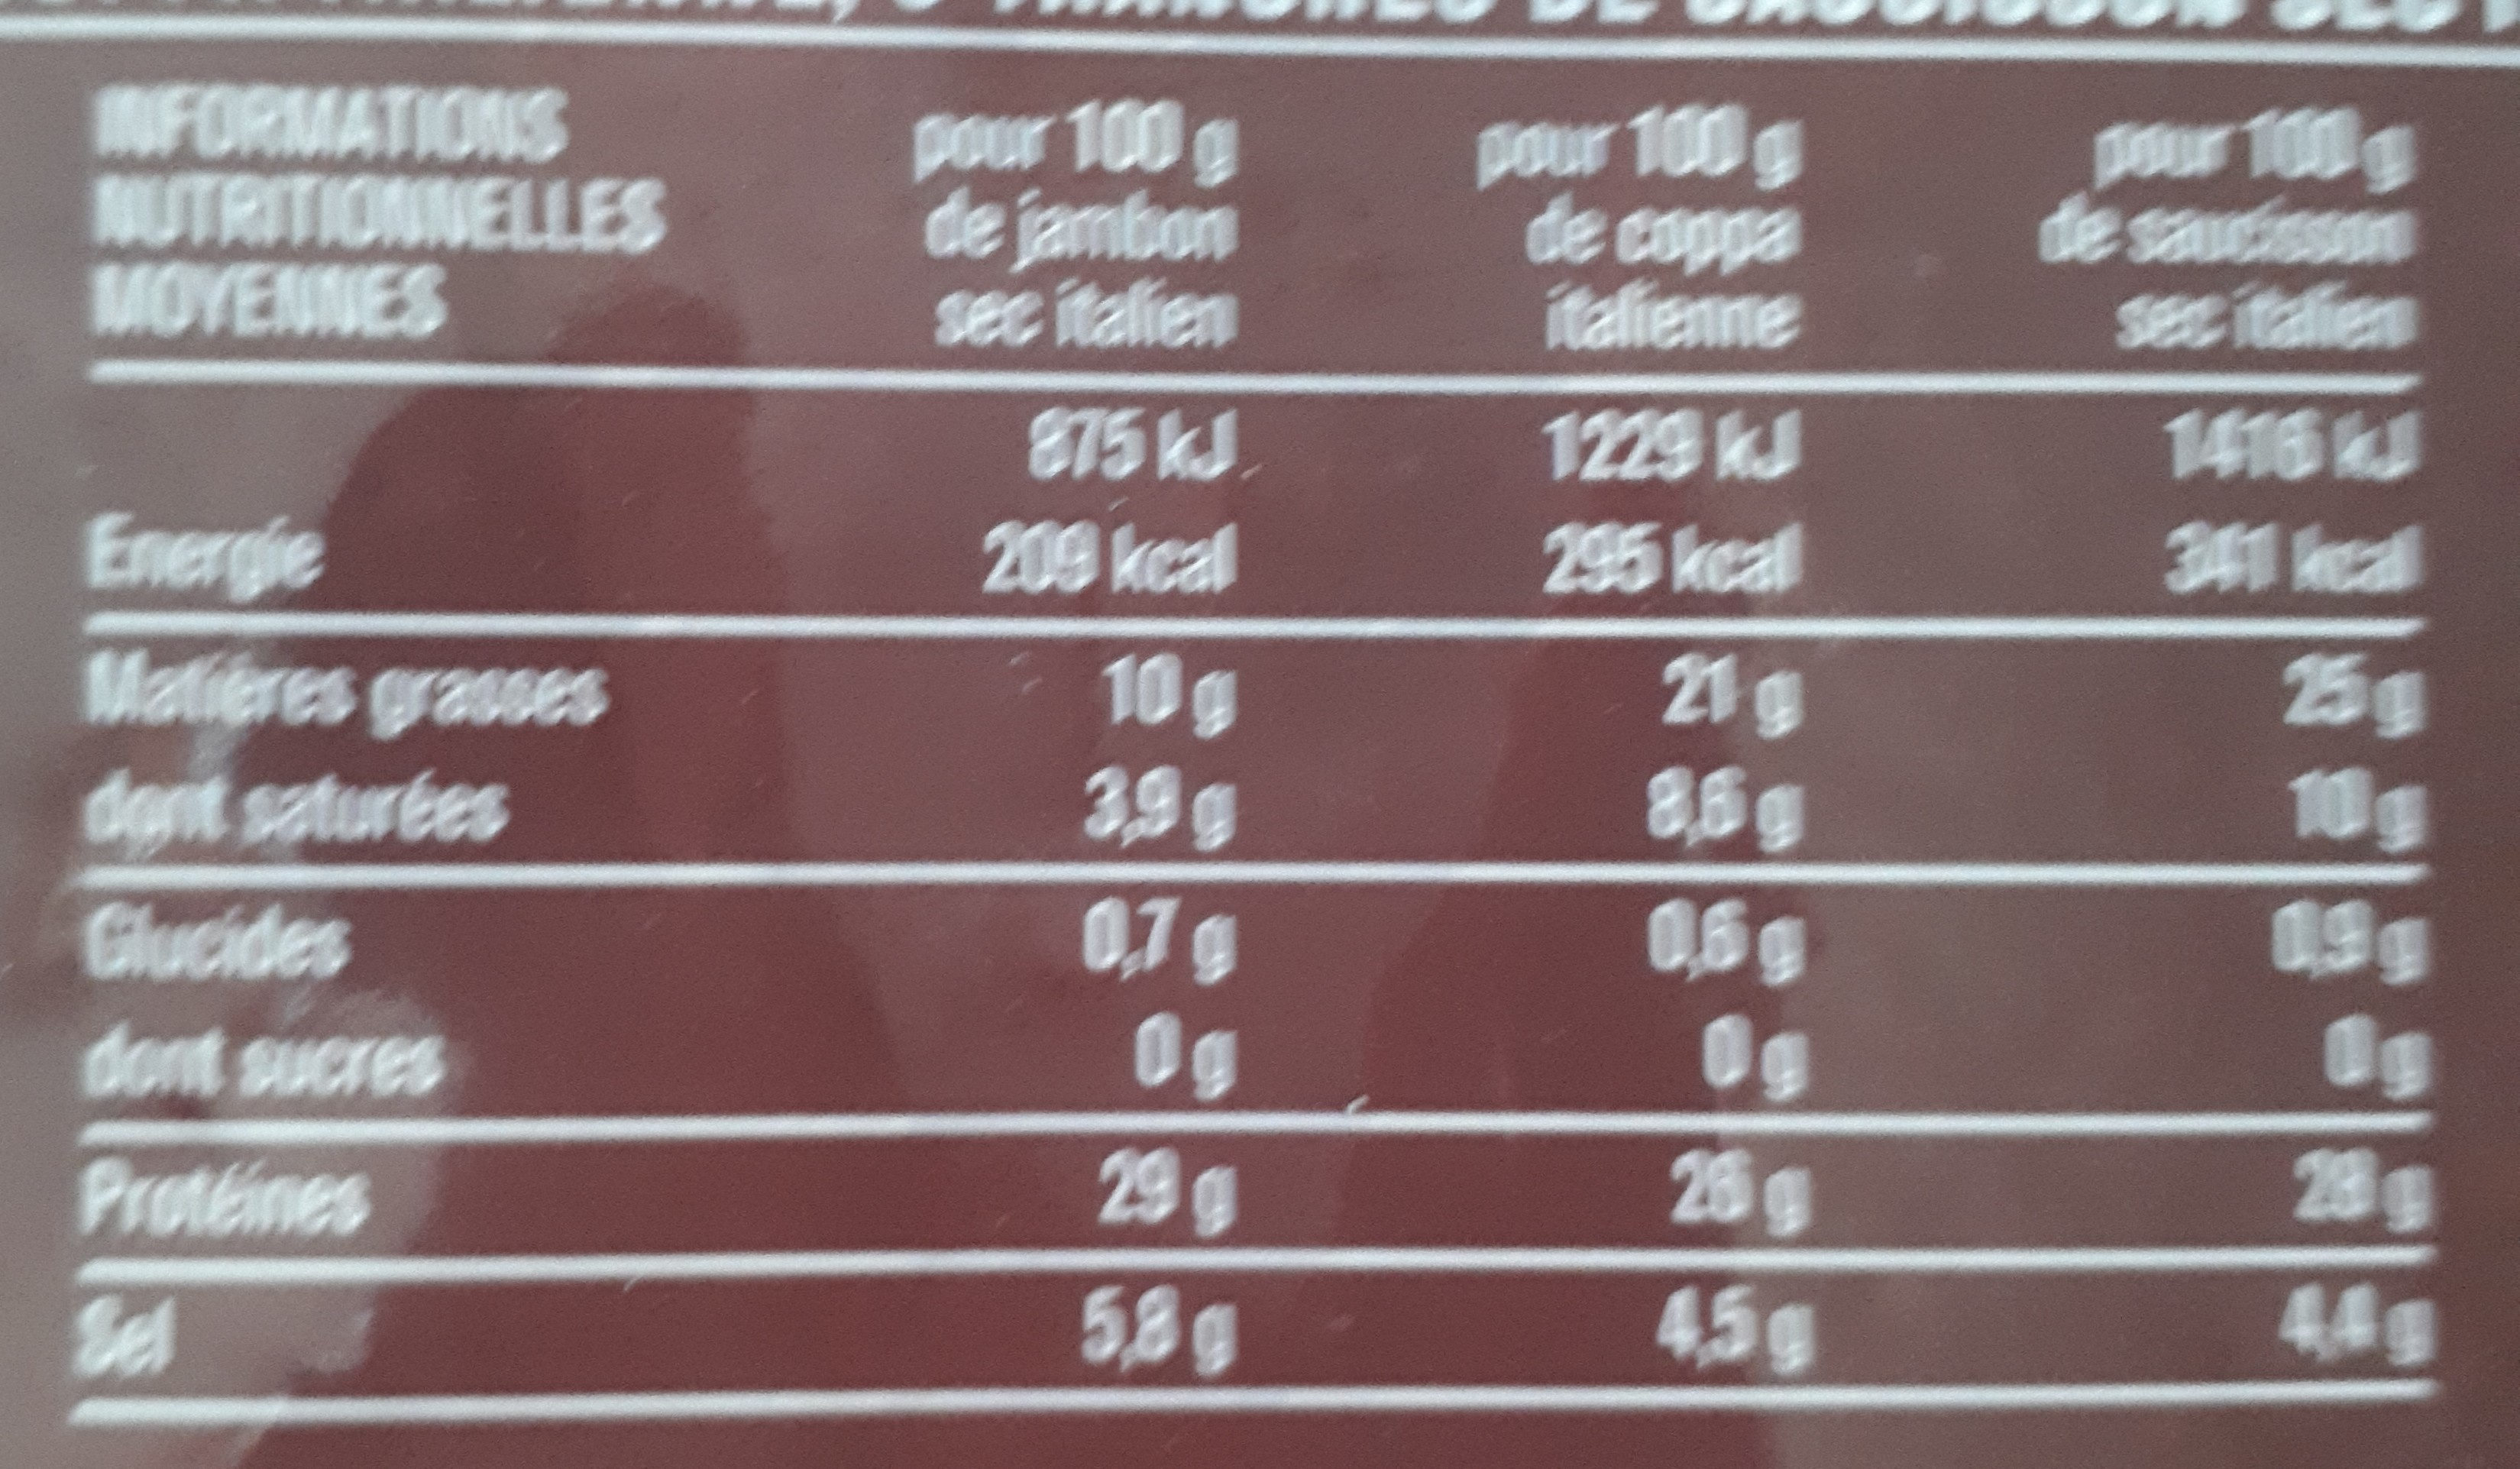 Assiette Italienne, jambon sec, saucisson sec et coppa - Nutrition facts